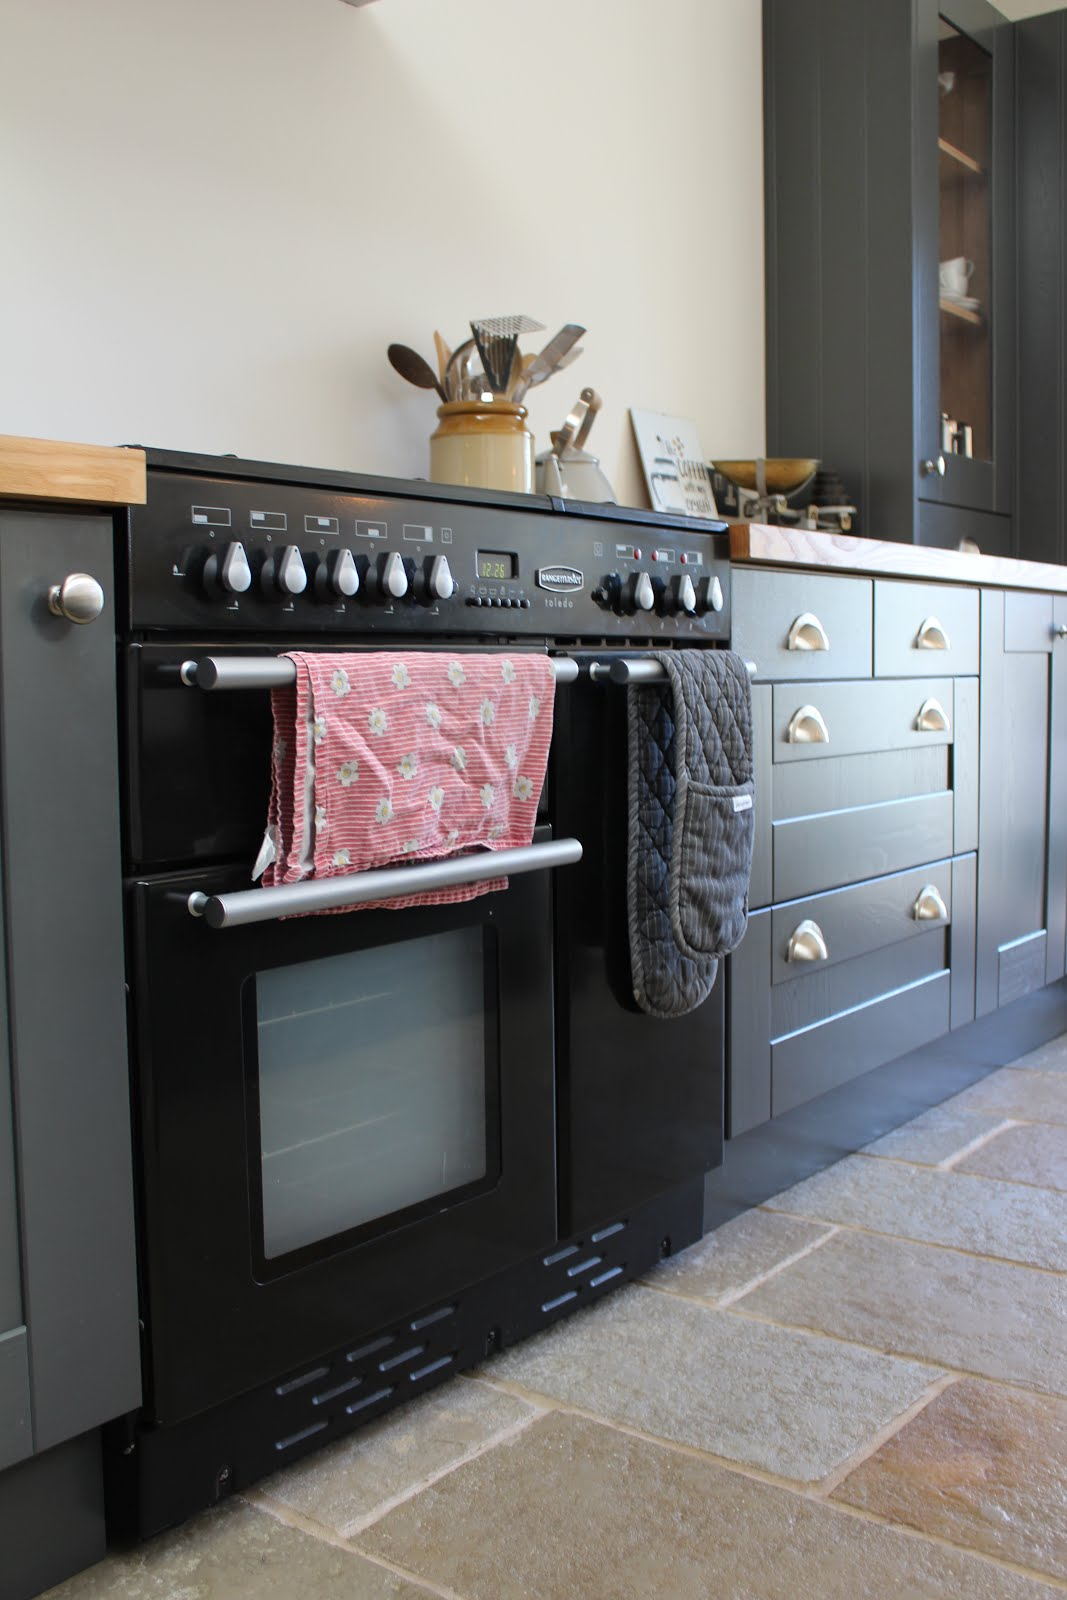 Black rangemaster cooker in grey kitchen